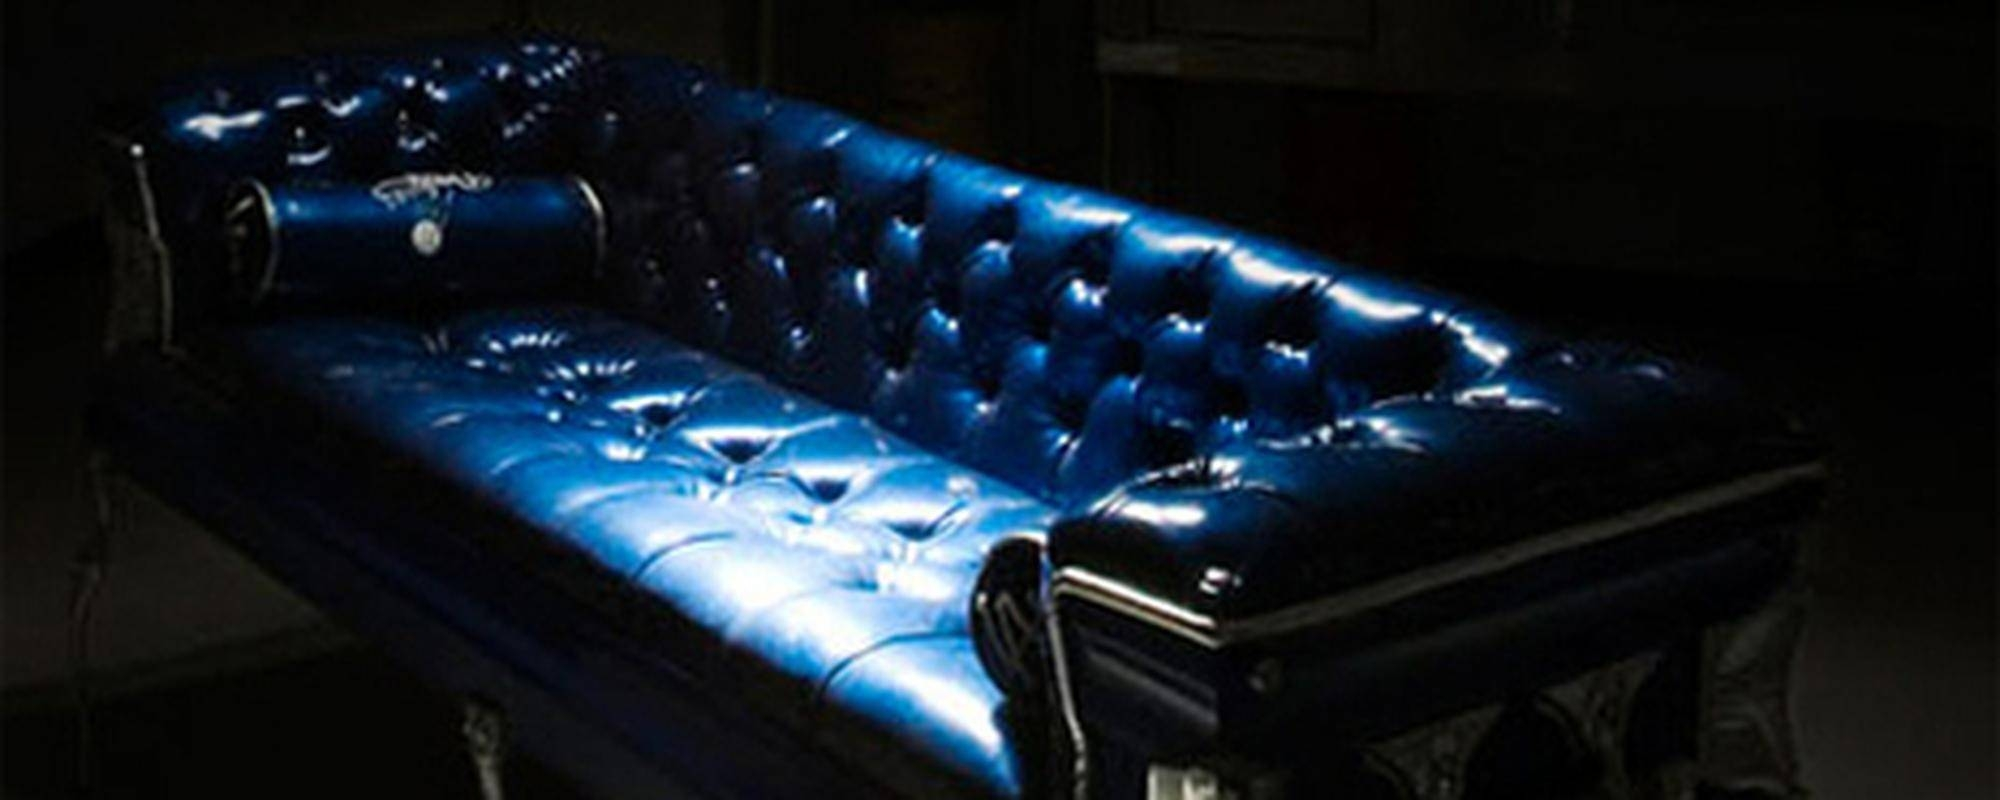 20 Best Ideas Coffin Sofas | Sofa Ideas intended for Coffin Sofas (Image 3 of 15)